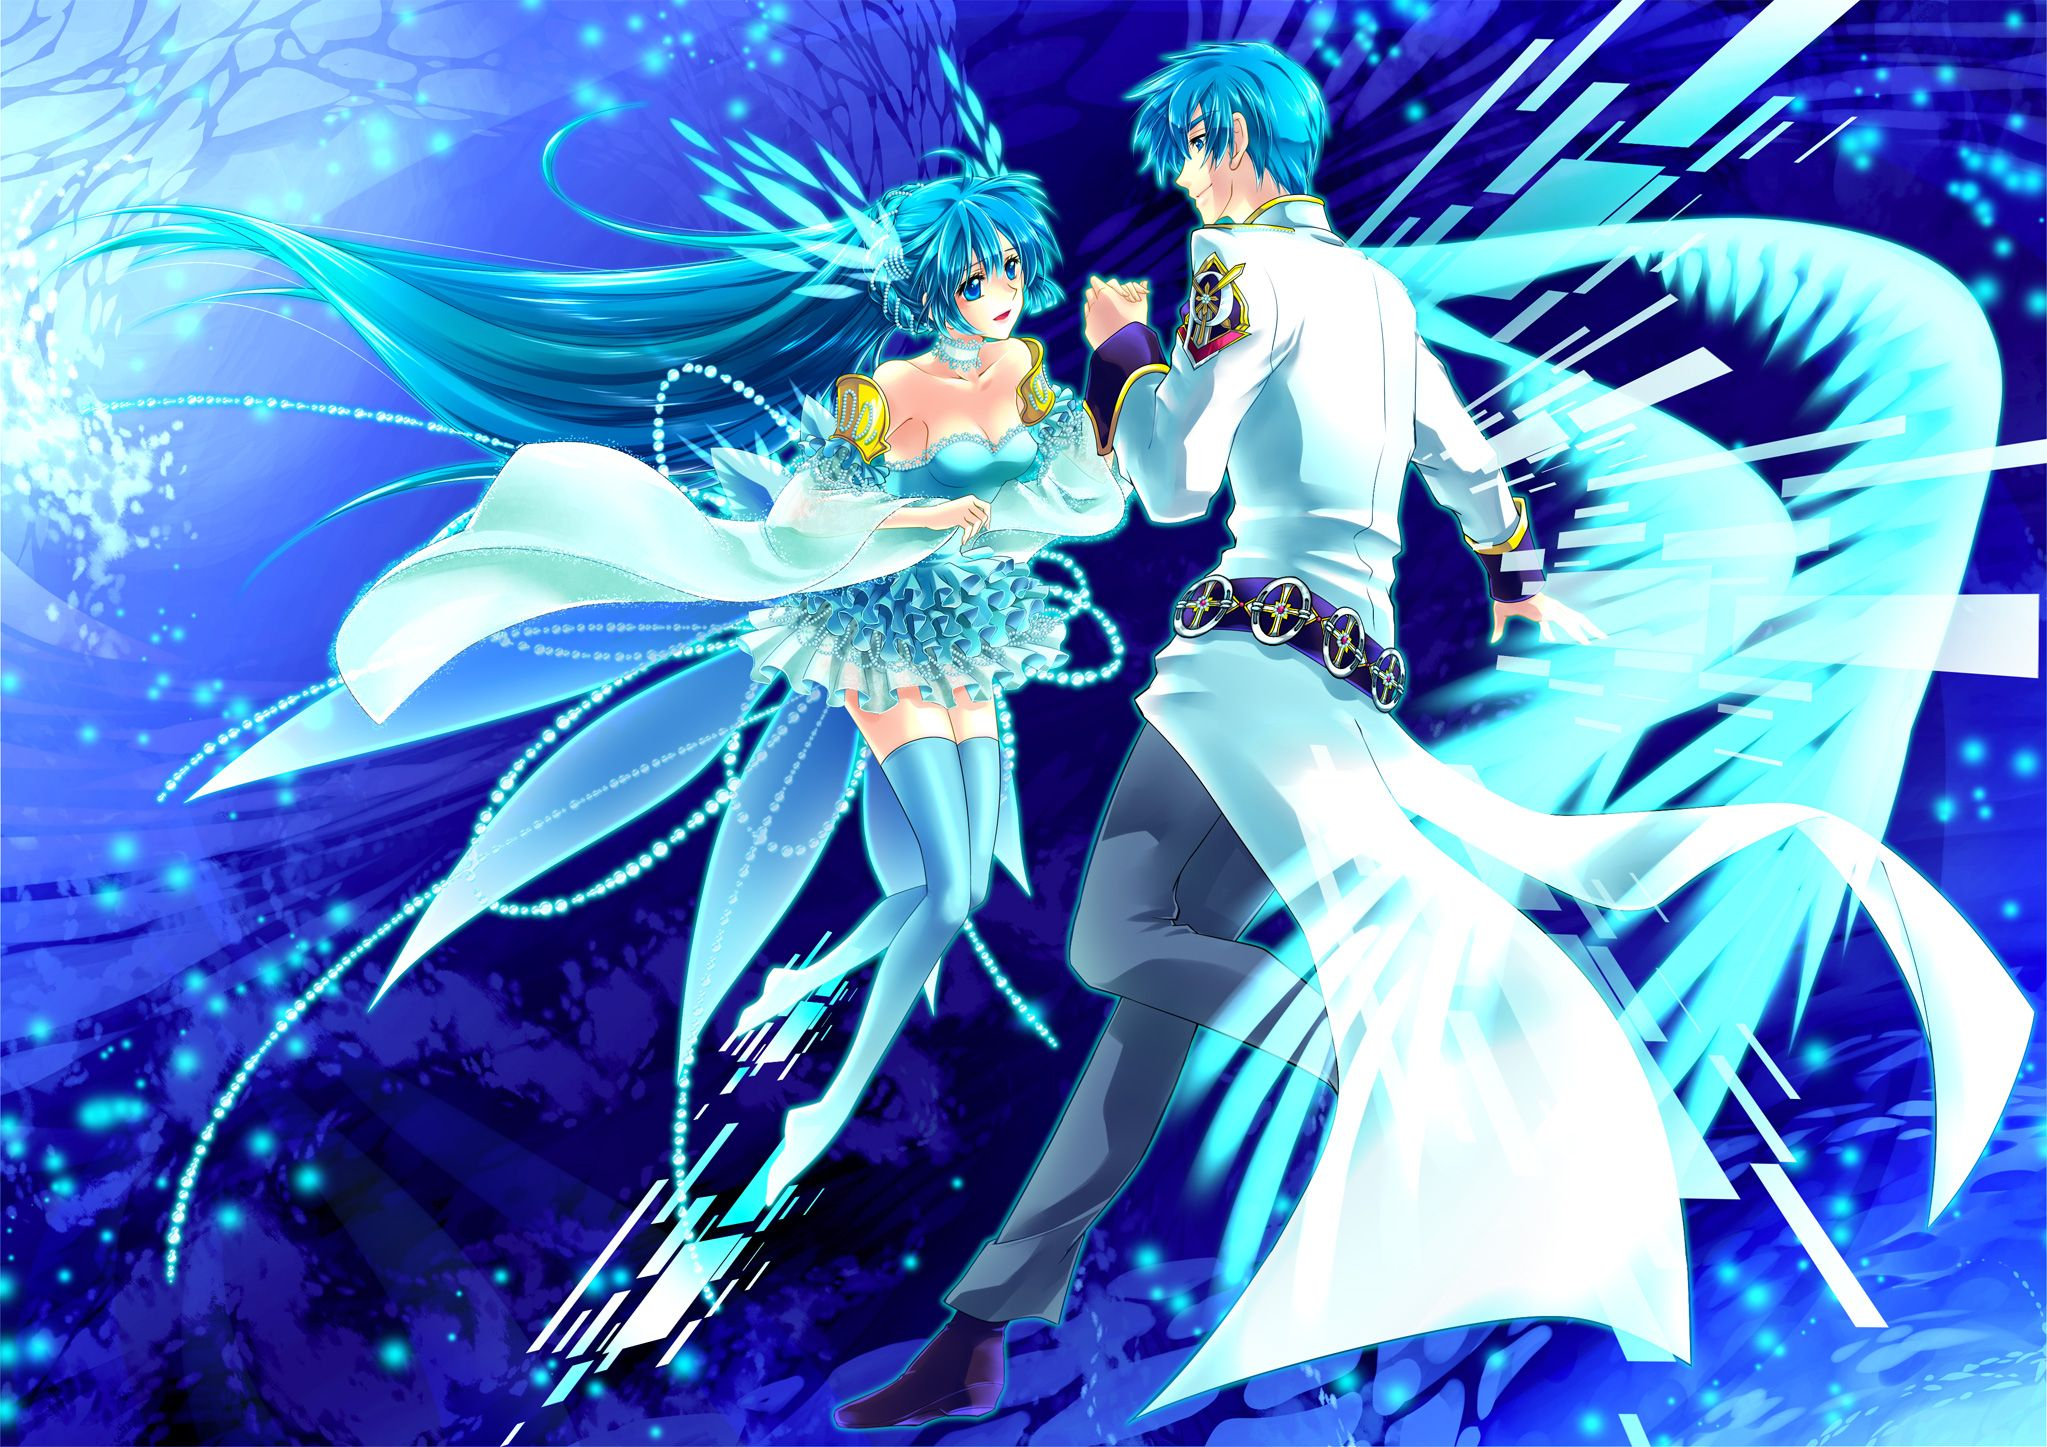 Download dancing anime blue wallpaper 2047x1447 full hd - Blue anime wallpaper ...